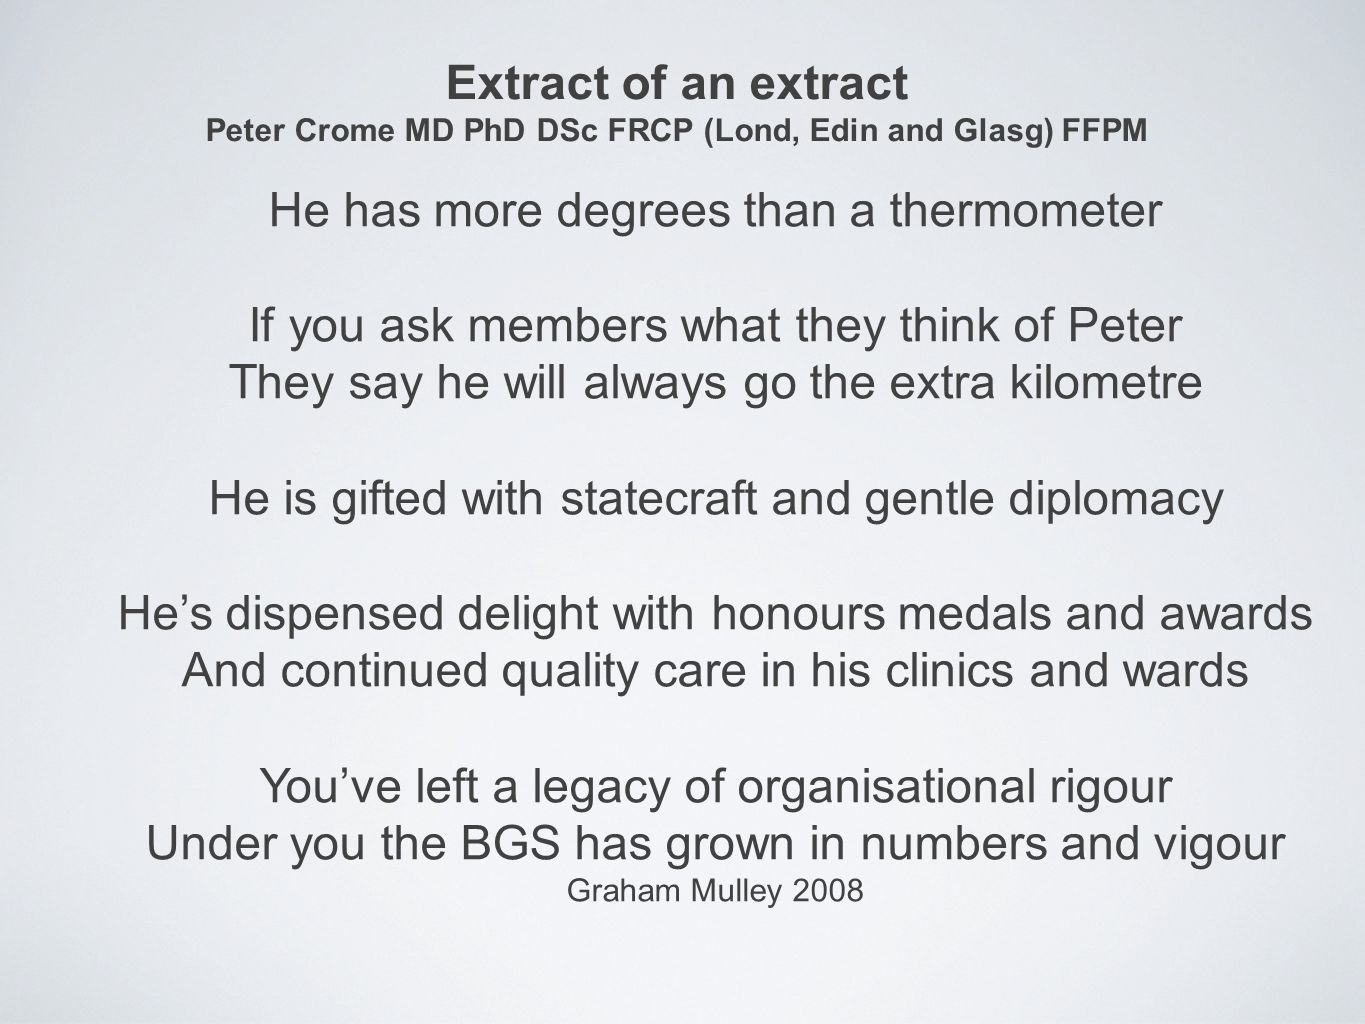 Extract of an extract Peter Crome MD PhD DSc FRCP (Lond, Edin and Glasg) FFPM He has more degrees than a thermometer If you ask members what they think of Peter They say he will always go the extra kilometre He is gifted with statecraft and gentle diplomacy He's dispensed delight with honours medals and awards And continued quality care in his clinics and wards You've left a legacy of organisational rigour Under you the BGS has grown in numbers and vigour Graham Mulley 2008